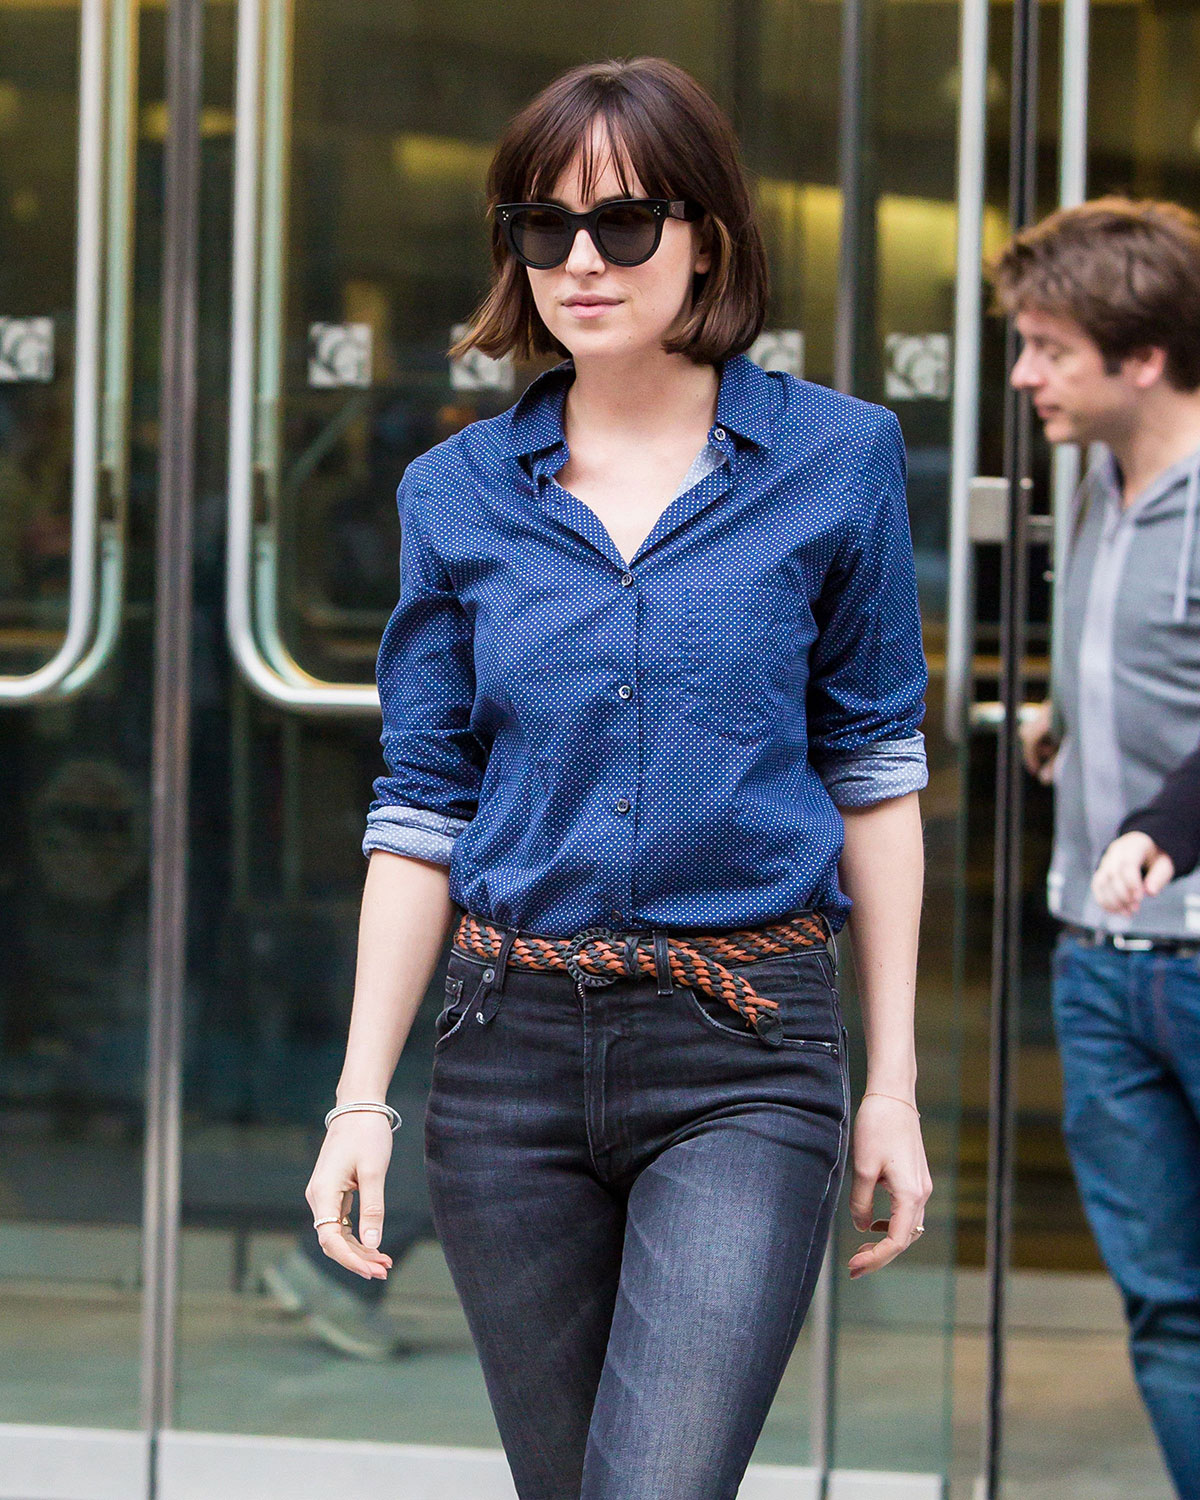 Dakota johnson on the set of how to be single in new york 05152015 dakota johnson on the set of how to be single in new york ccuart Image collections